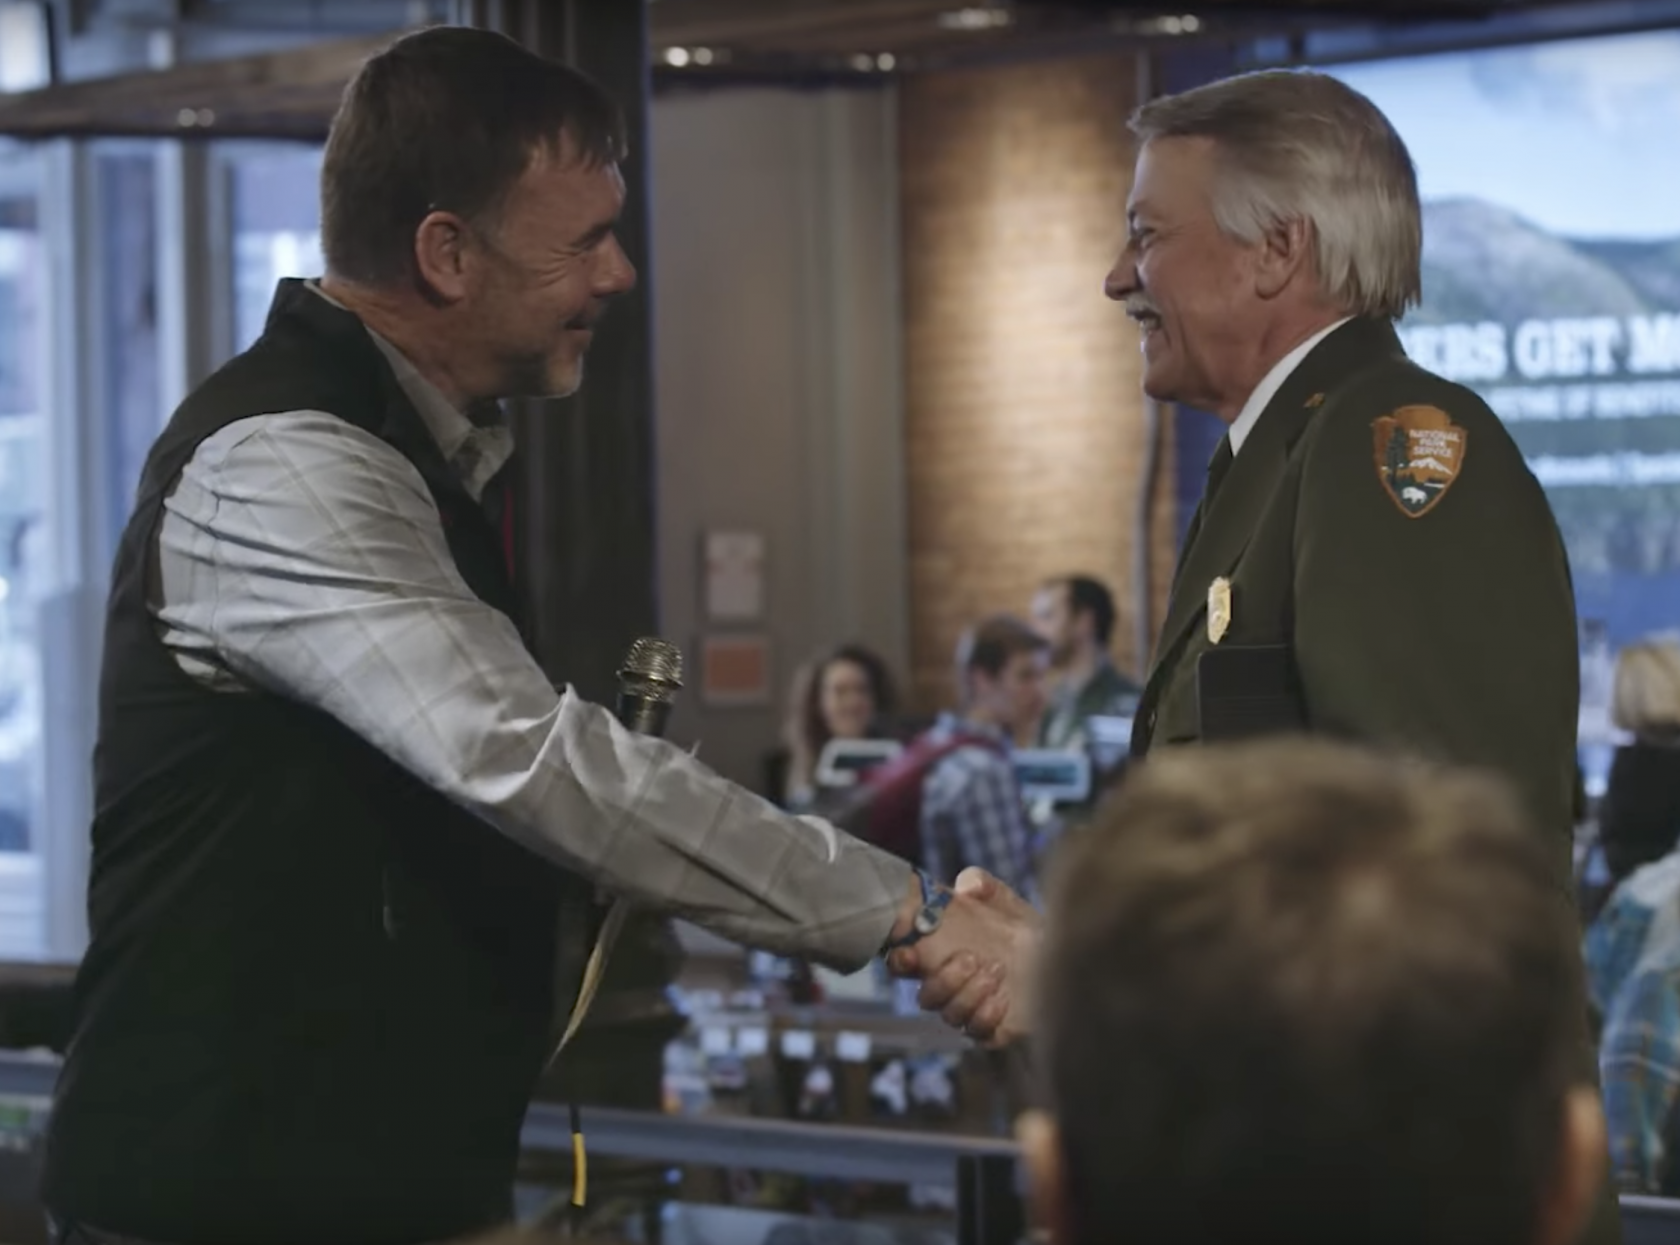 An REI employee shaking hands wit the former National Park Service Director John Jarvis